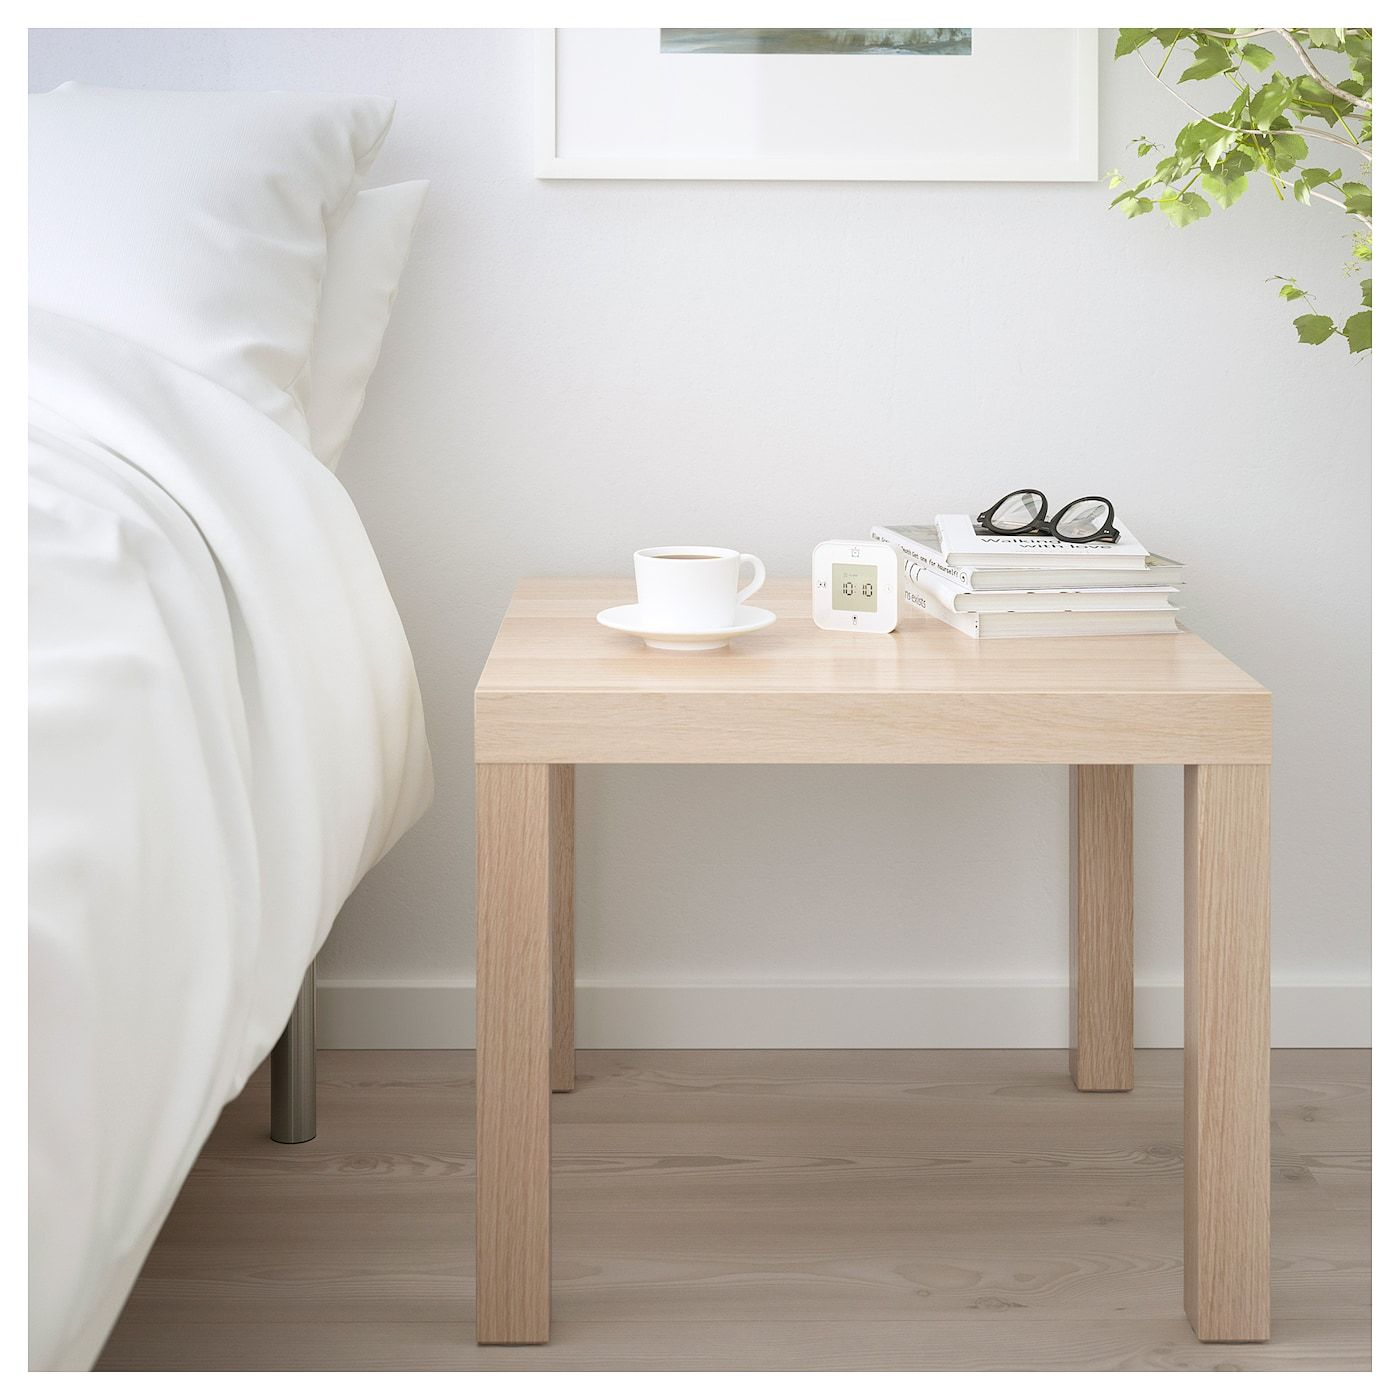 Lack Beistelltisch Eicheneff Wlas Ikea Osterreich Ikea Lack Side Table White Side Tables White Side Table Bedroom